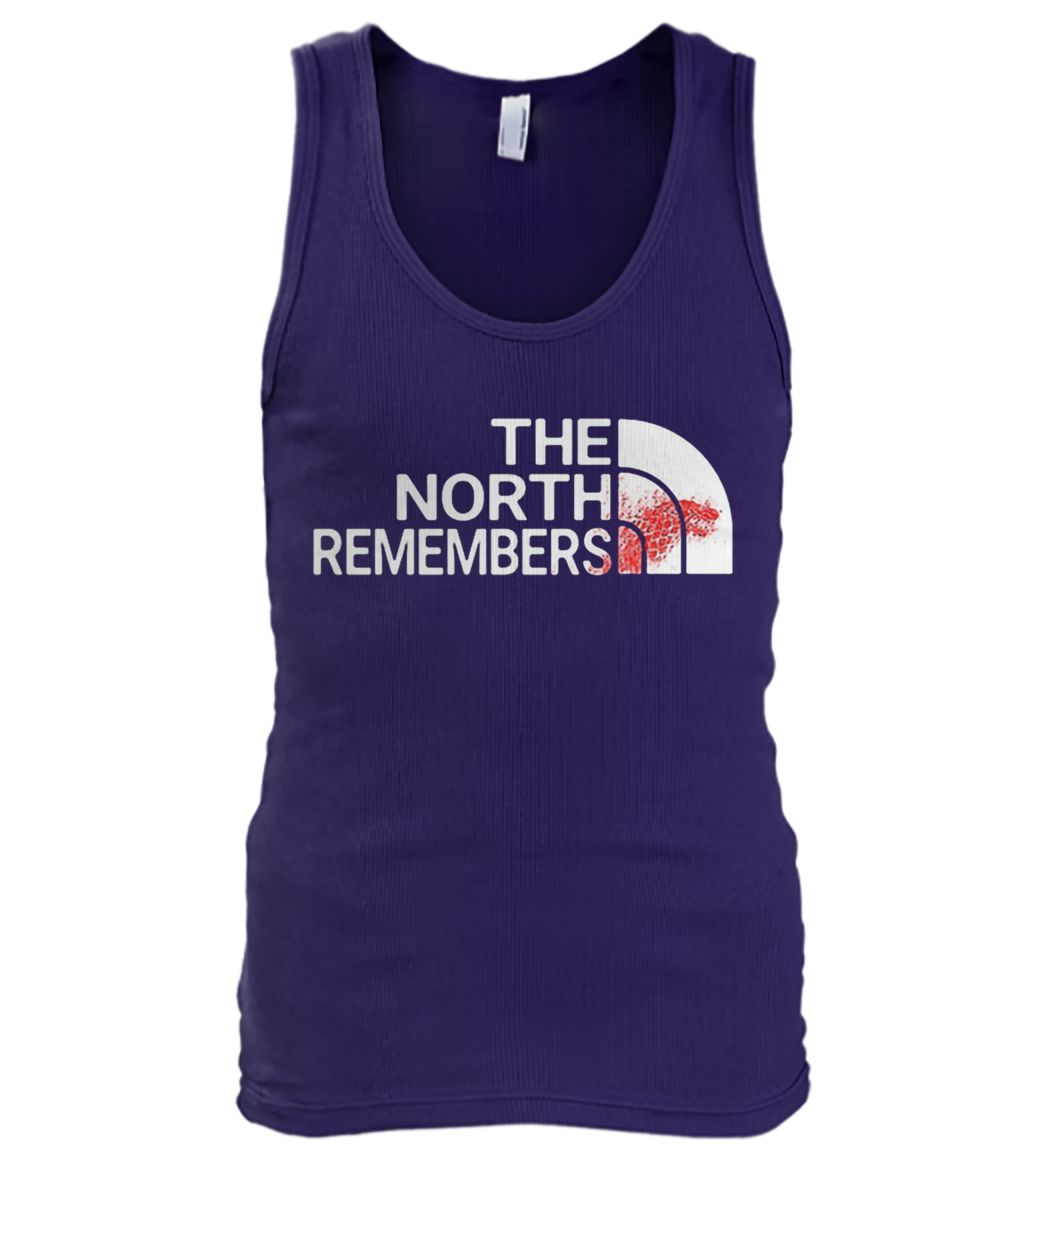 The north remembers men's tank top